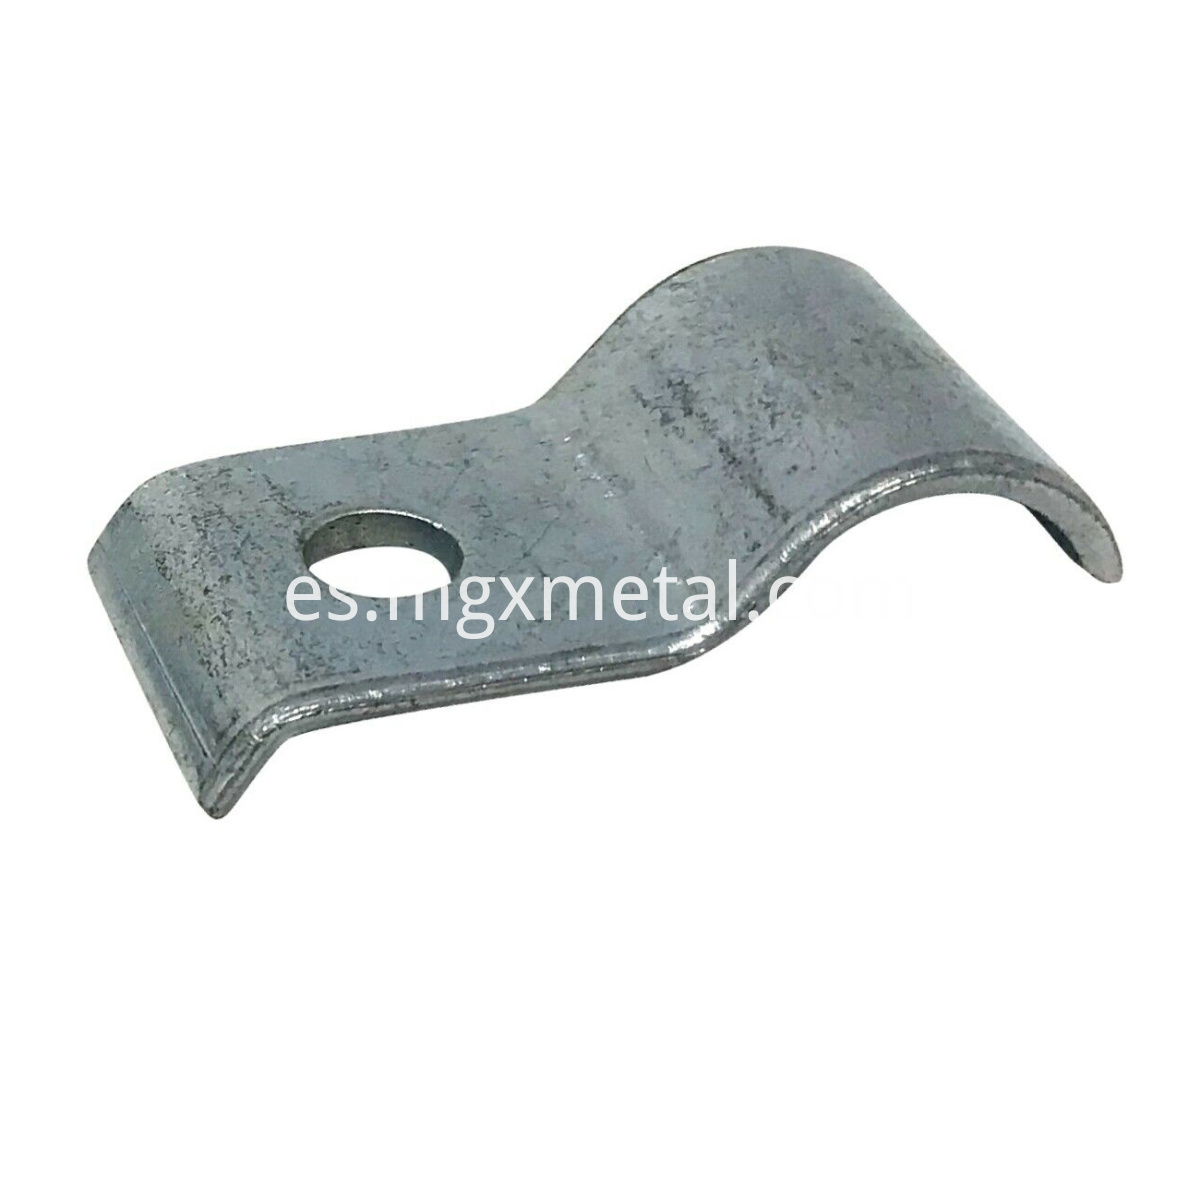 Half Saddle Clamp